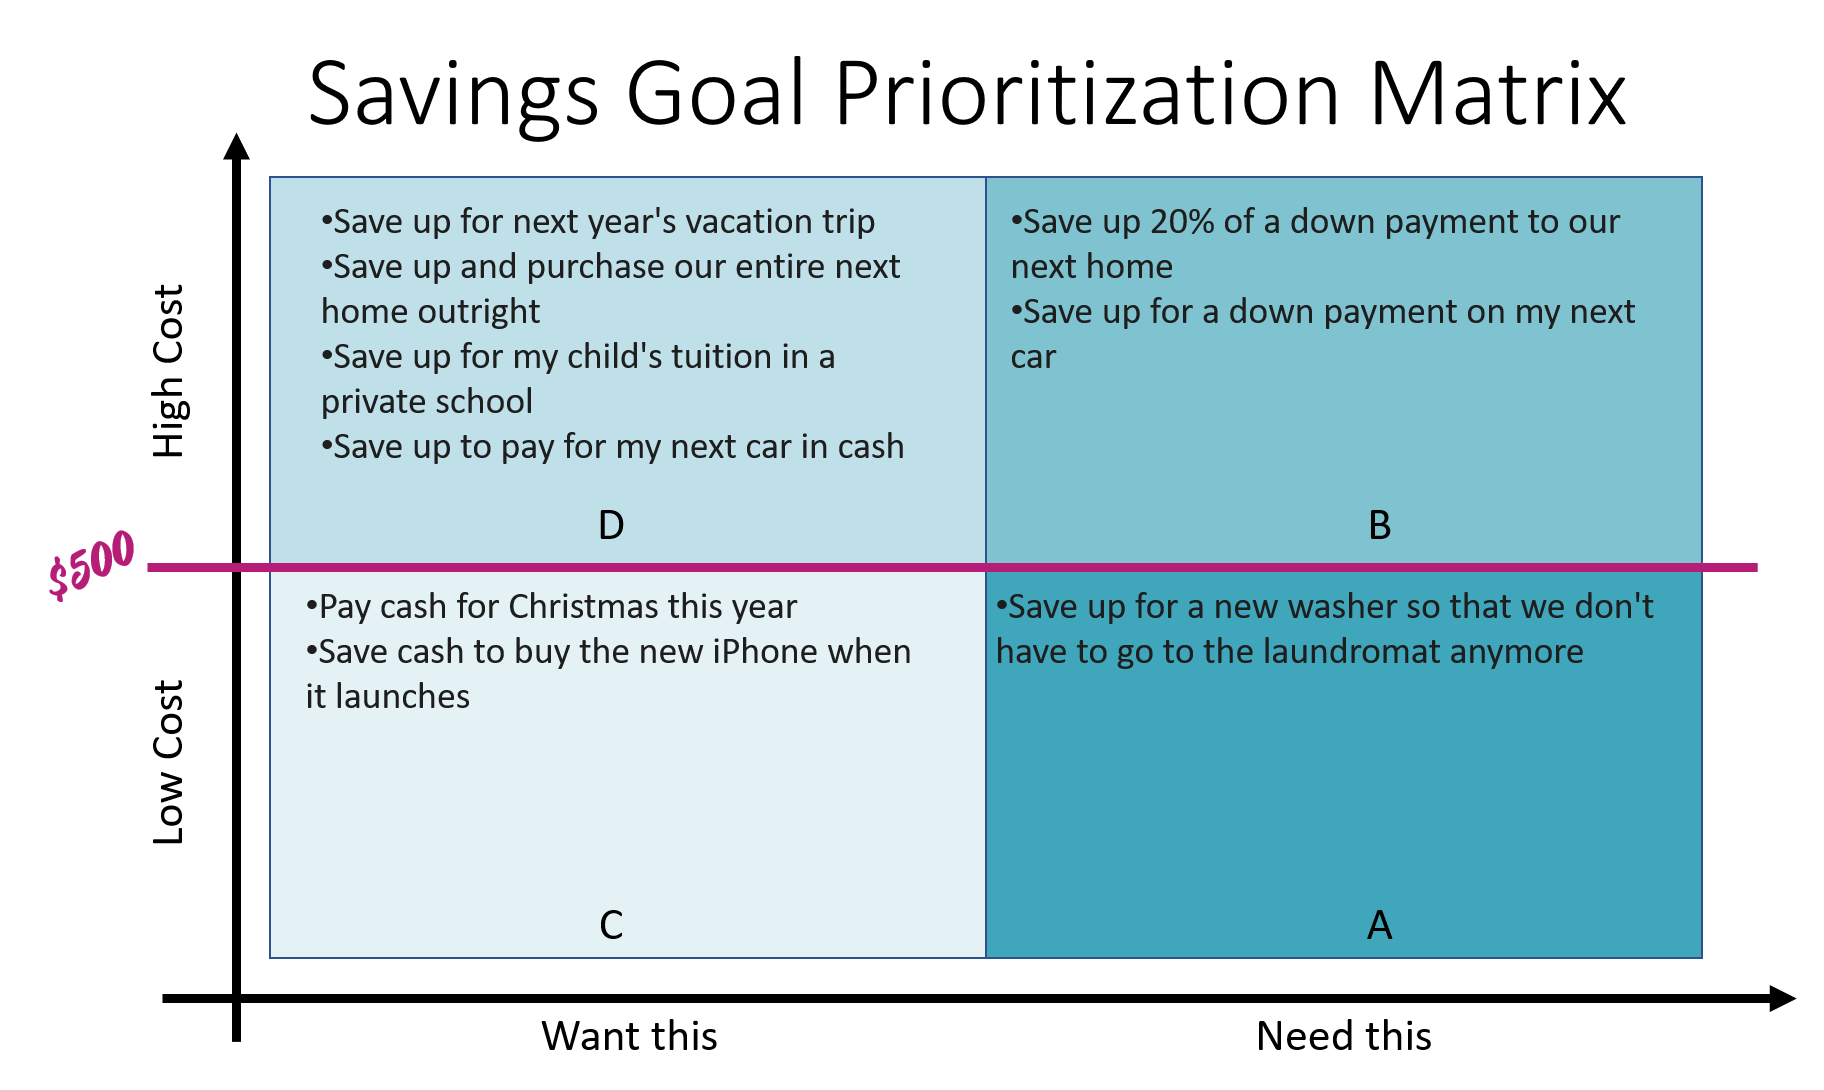 savings goal prioritization matrix with four quadrants, filled in with savings goals from above ($500 or less is low costing)